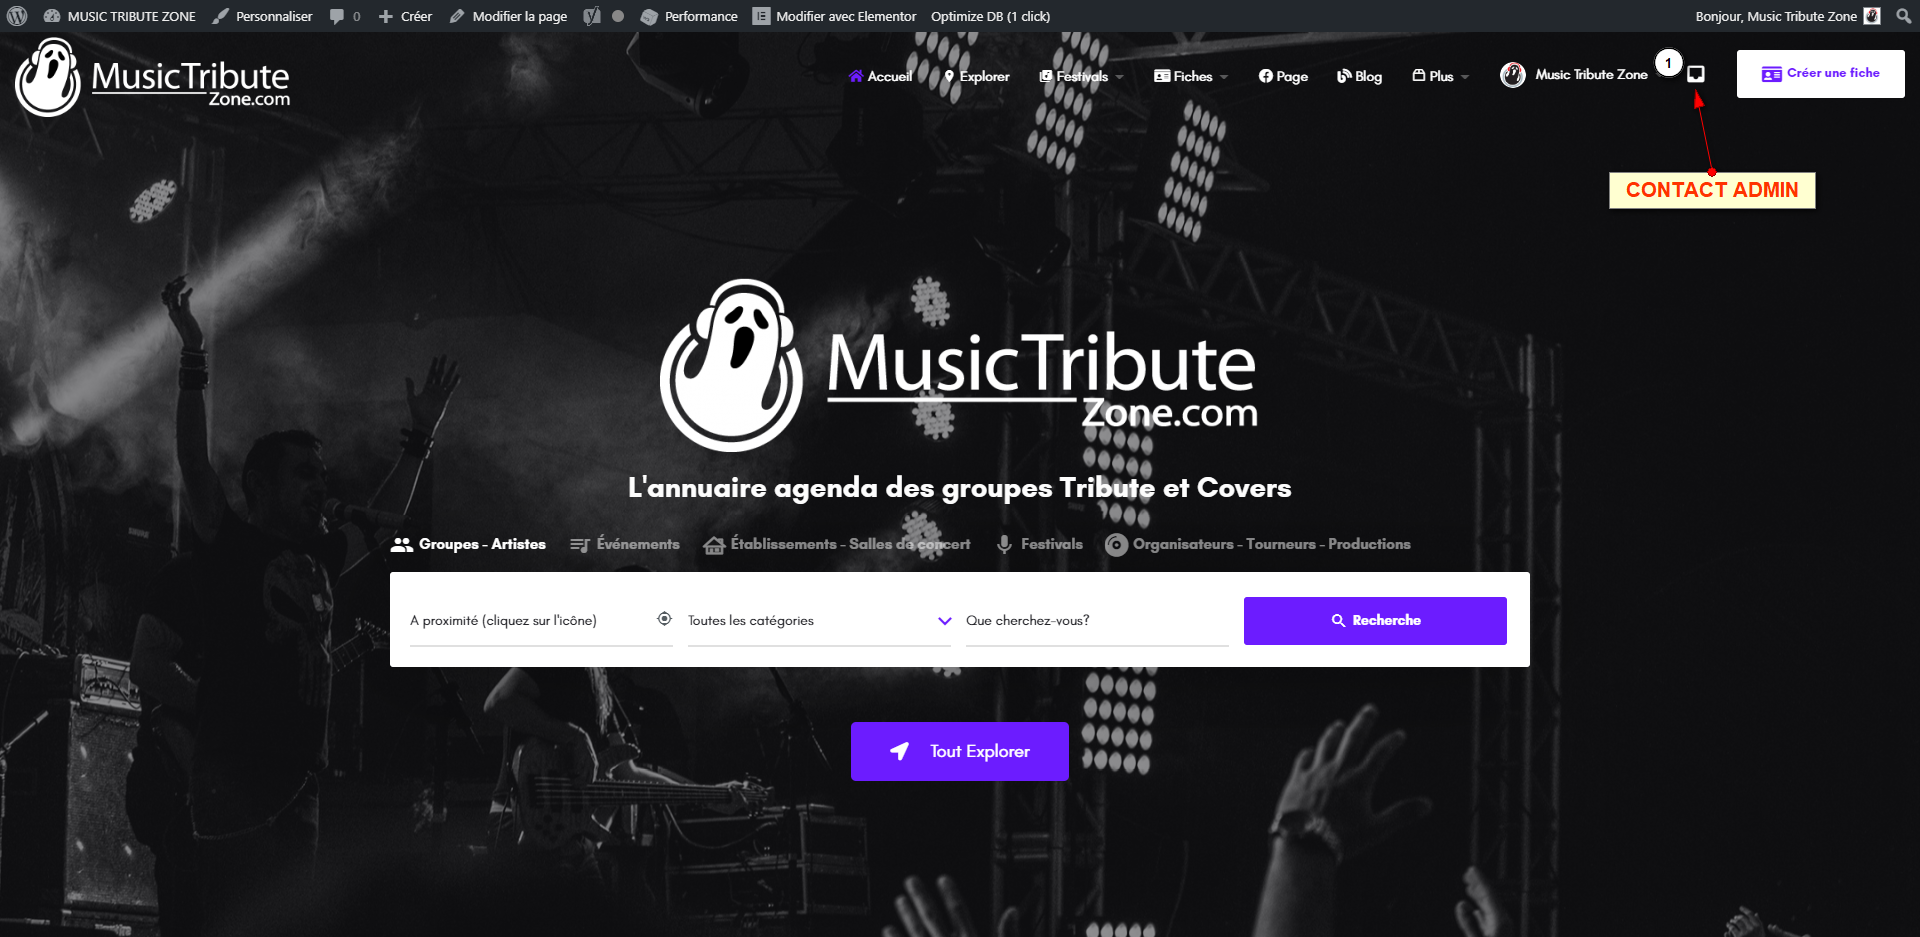 FireShot Pro Screen Capture #015 - 'MUSIC TRIBUTE ZONE I Répertoire Tribute & Covers' - music-tribute-zone_com